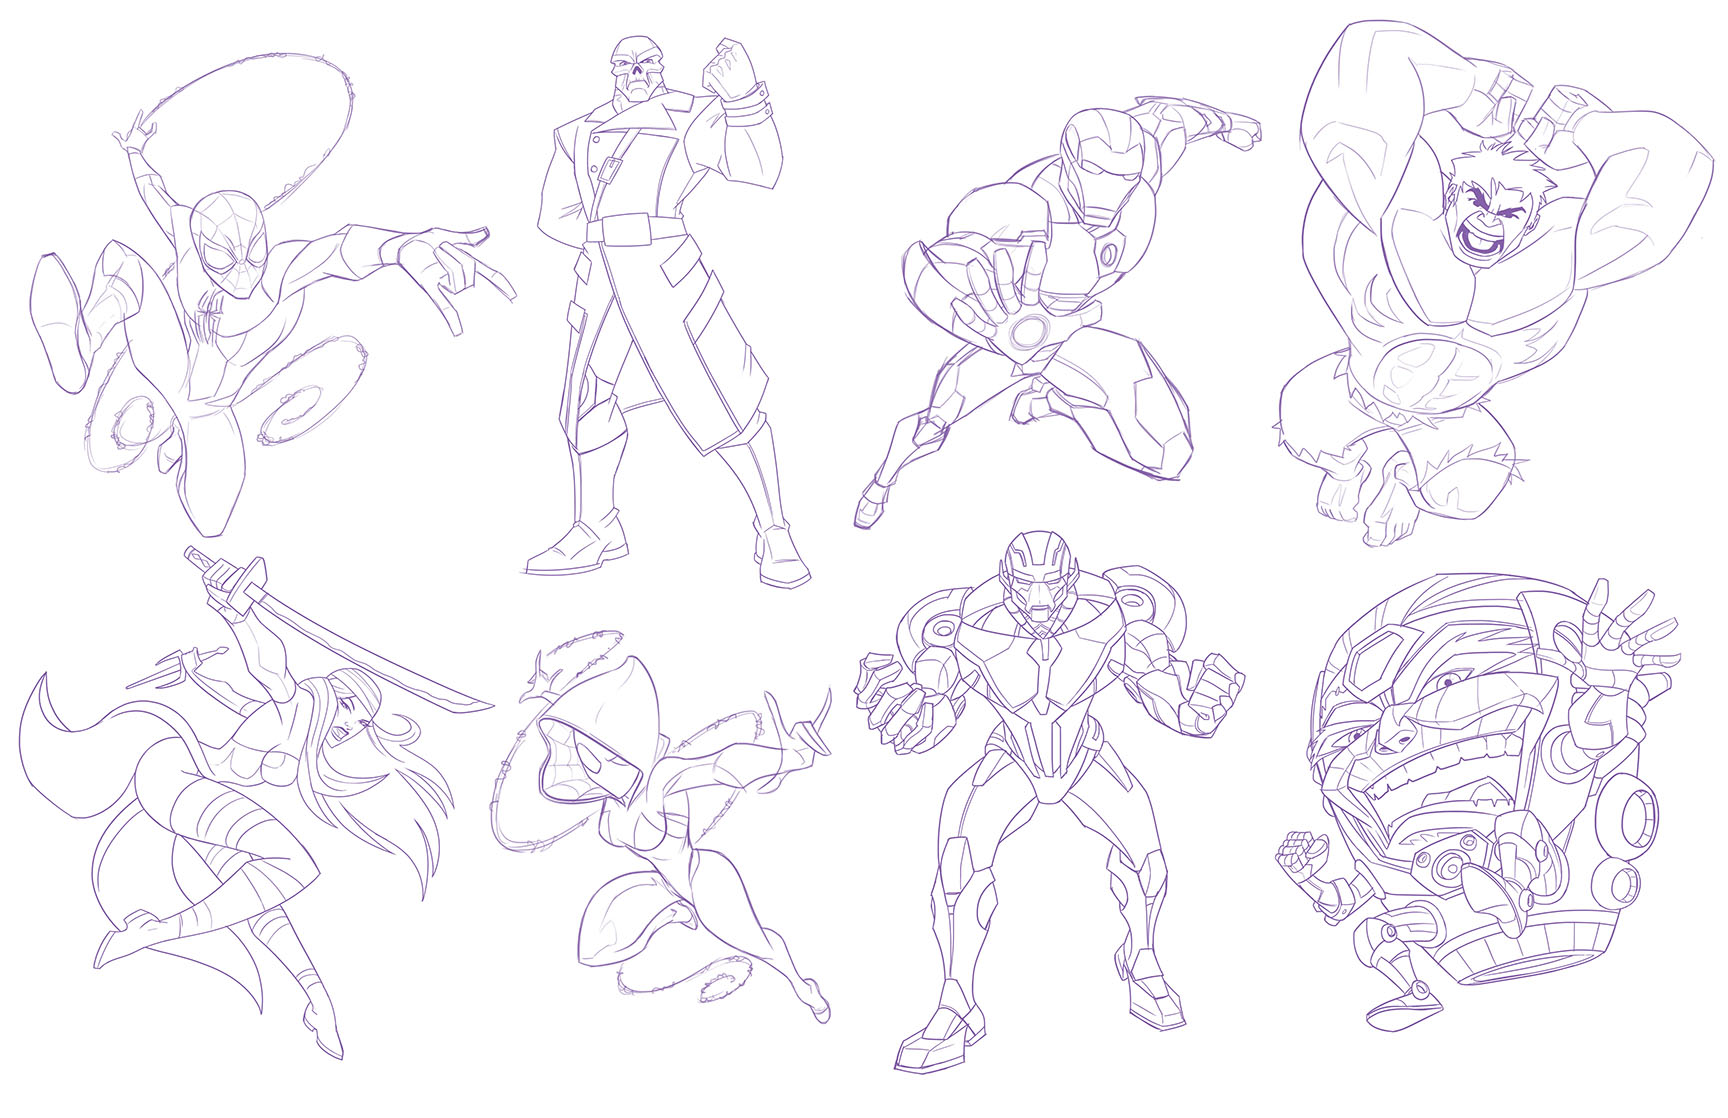 Marvel-Rough-Sketches-2.jpg